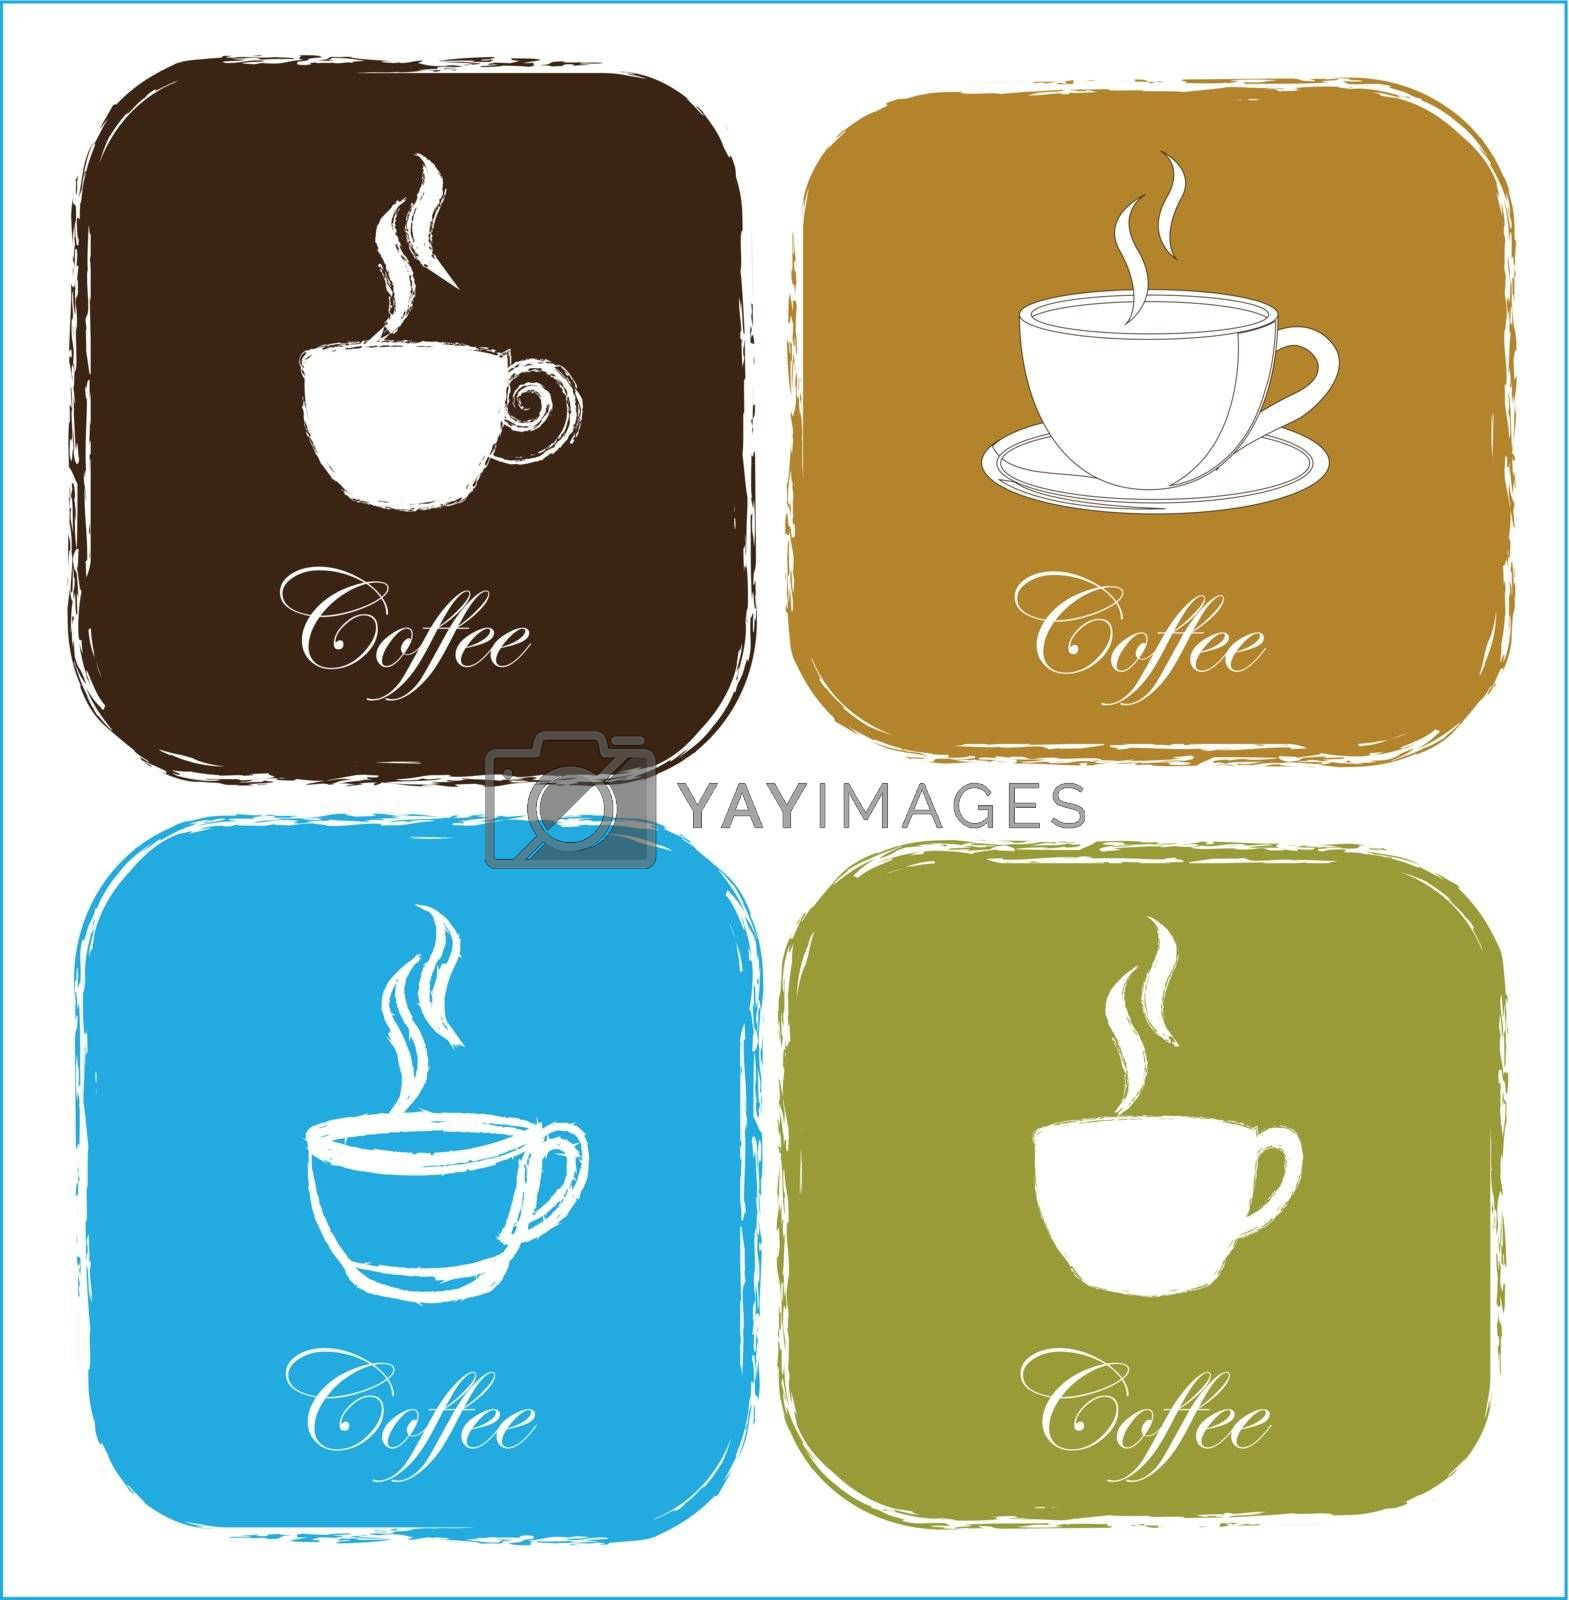 flavored coffee cups with vintage squares over white background